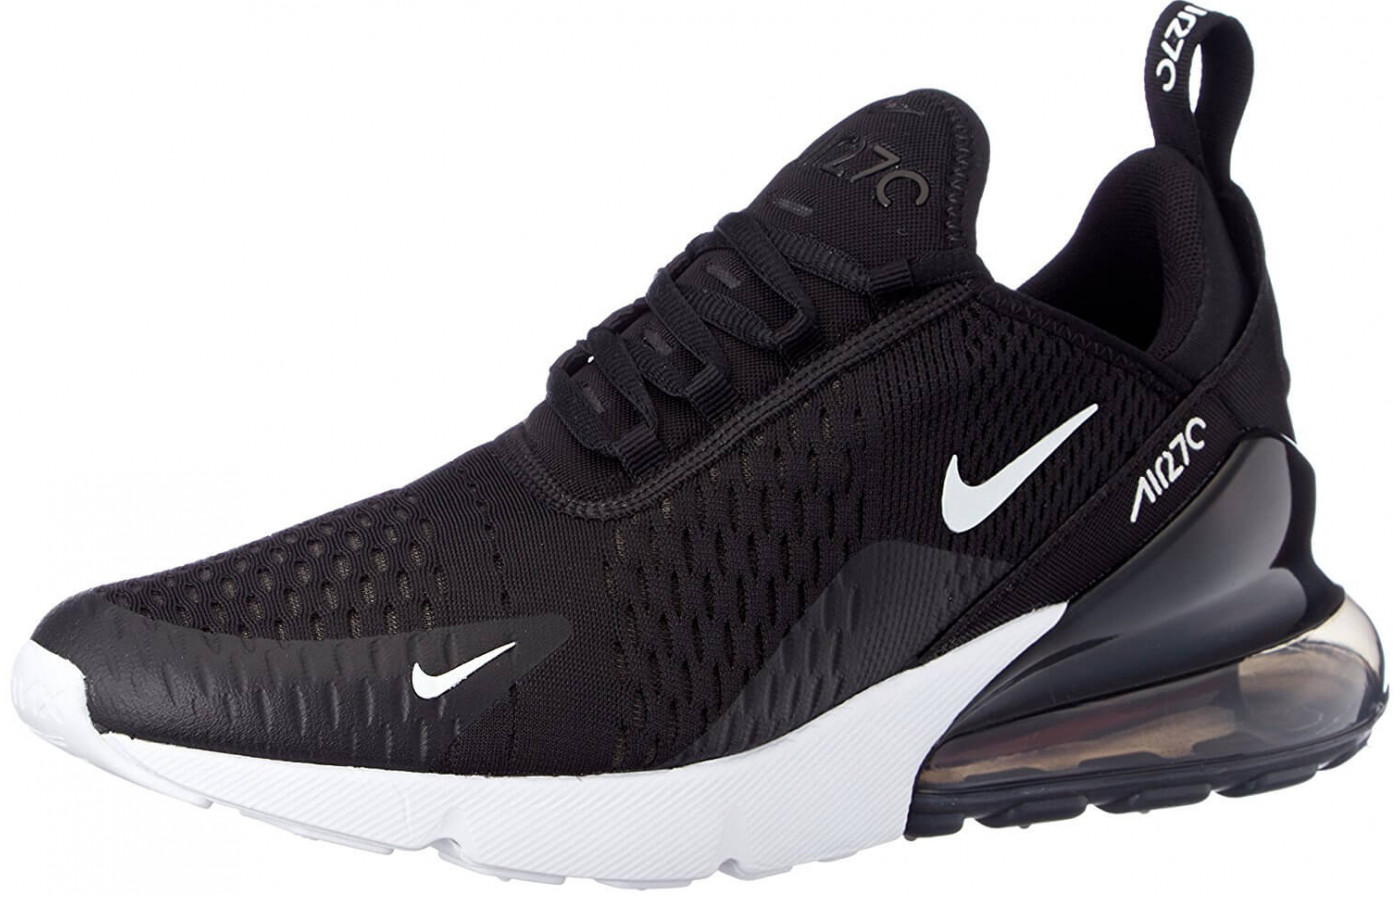 cheaper 861d9 ded12 Nike Air Max 270